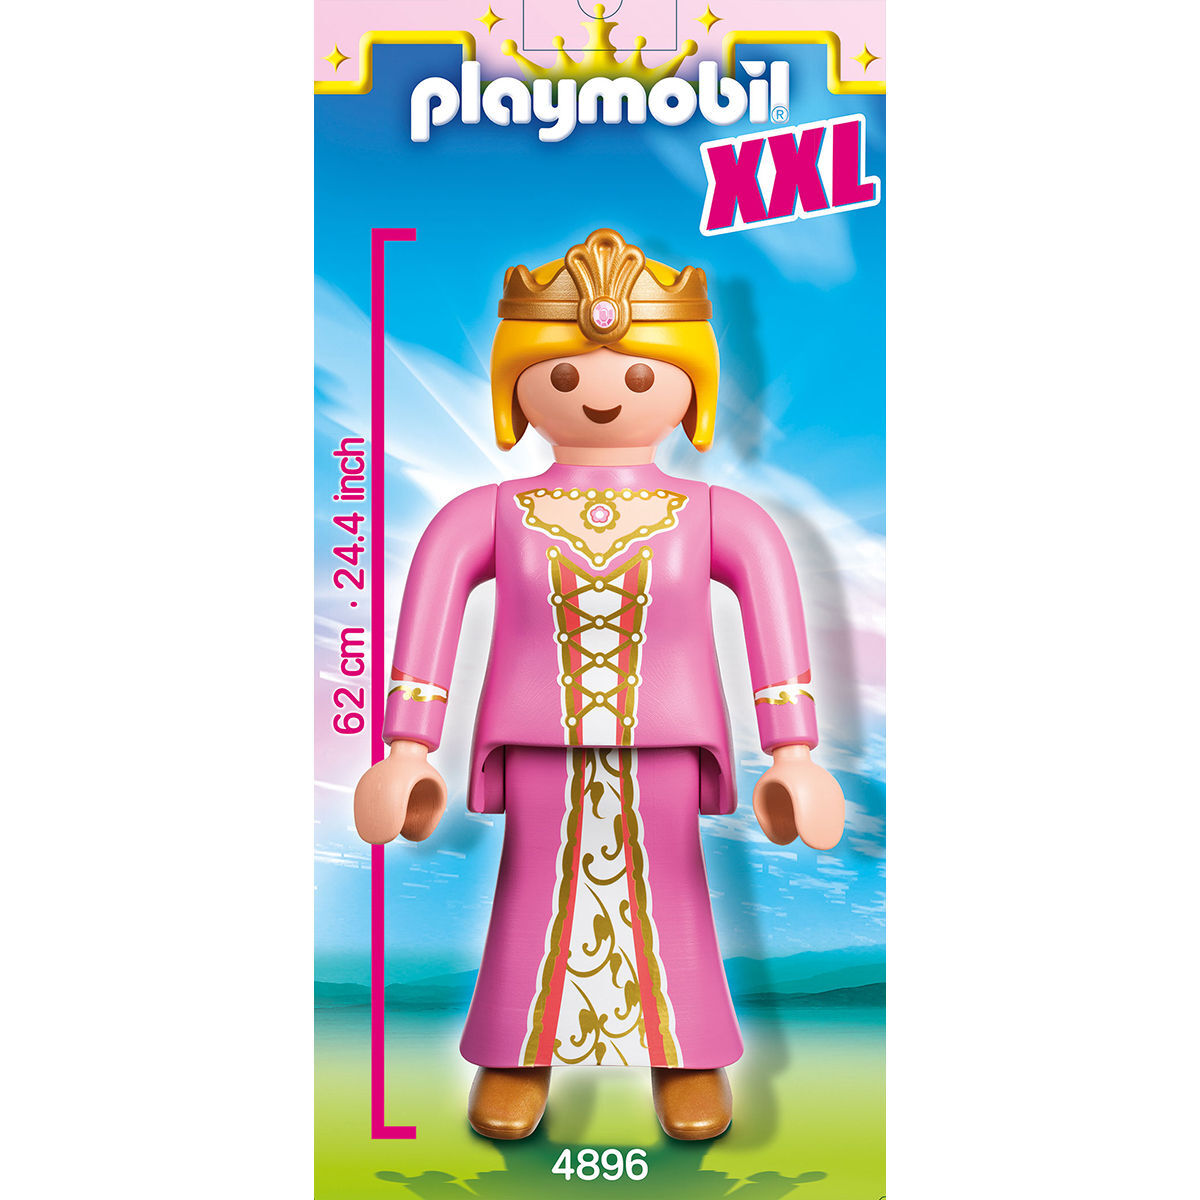 playmobil xxl prinzessin 4896 karstadt online shop. Black Bedroom Furniture Sets. Home Design Ideas